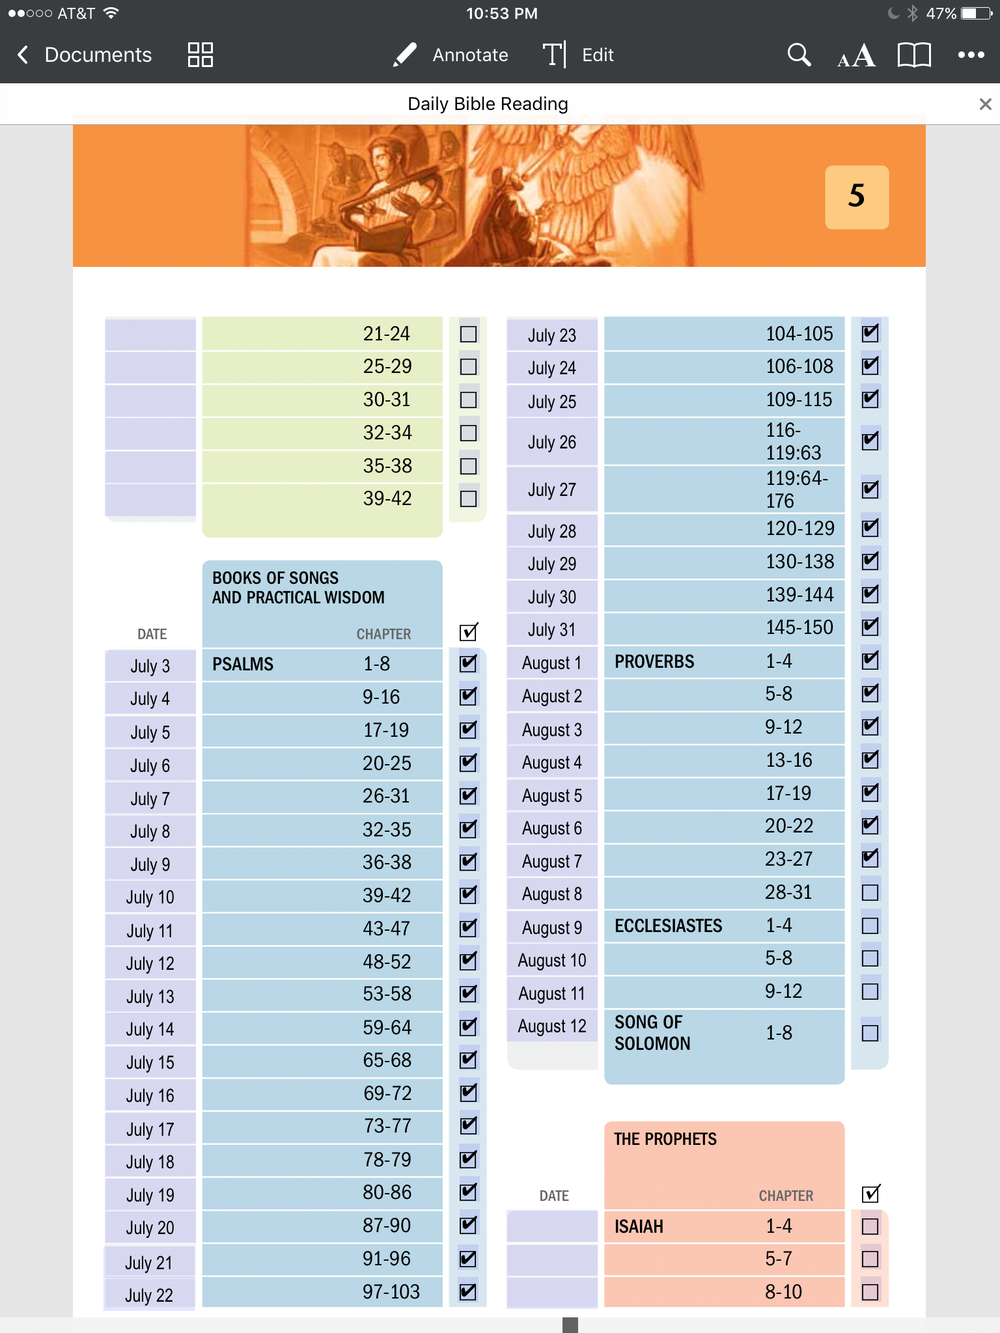 jw-daily-bible-reading-schedule